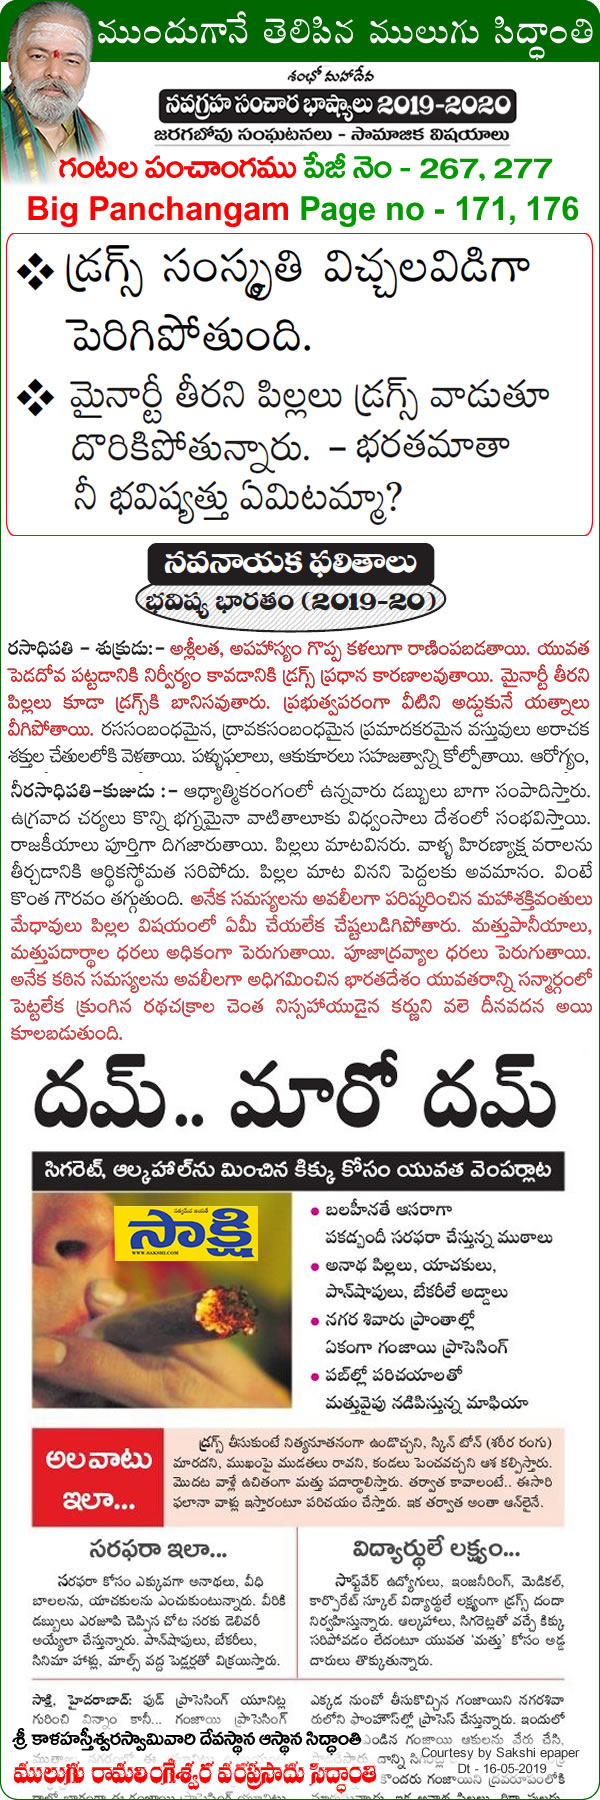 Mulugu Siddanthi Proven Prediction Mulugu-Prediction Hooked-to-drugs-in-school-and-college-Hyderabad-s-young-on-a-high-drugs-use-students-and-parties-in-hyderabad -Print-media-by Sakshi,Vaartha, Times of Indida, Namaste Telangana